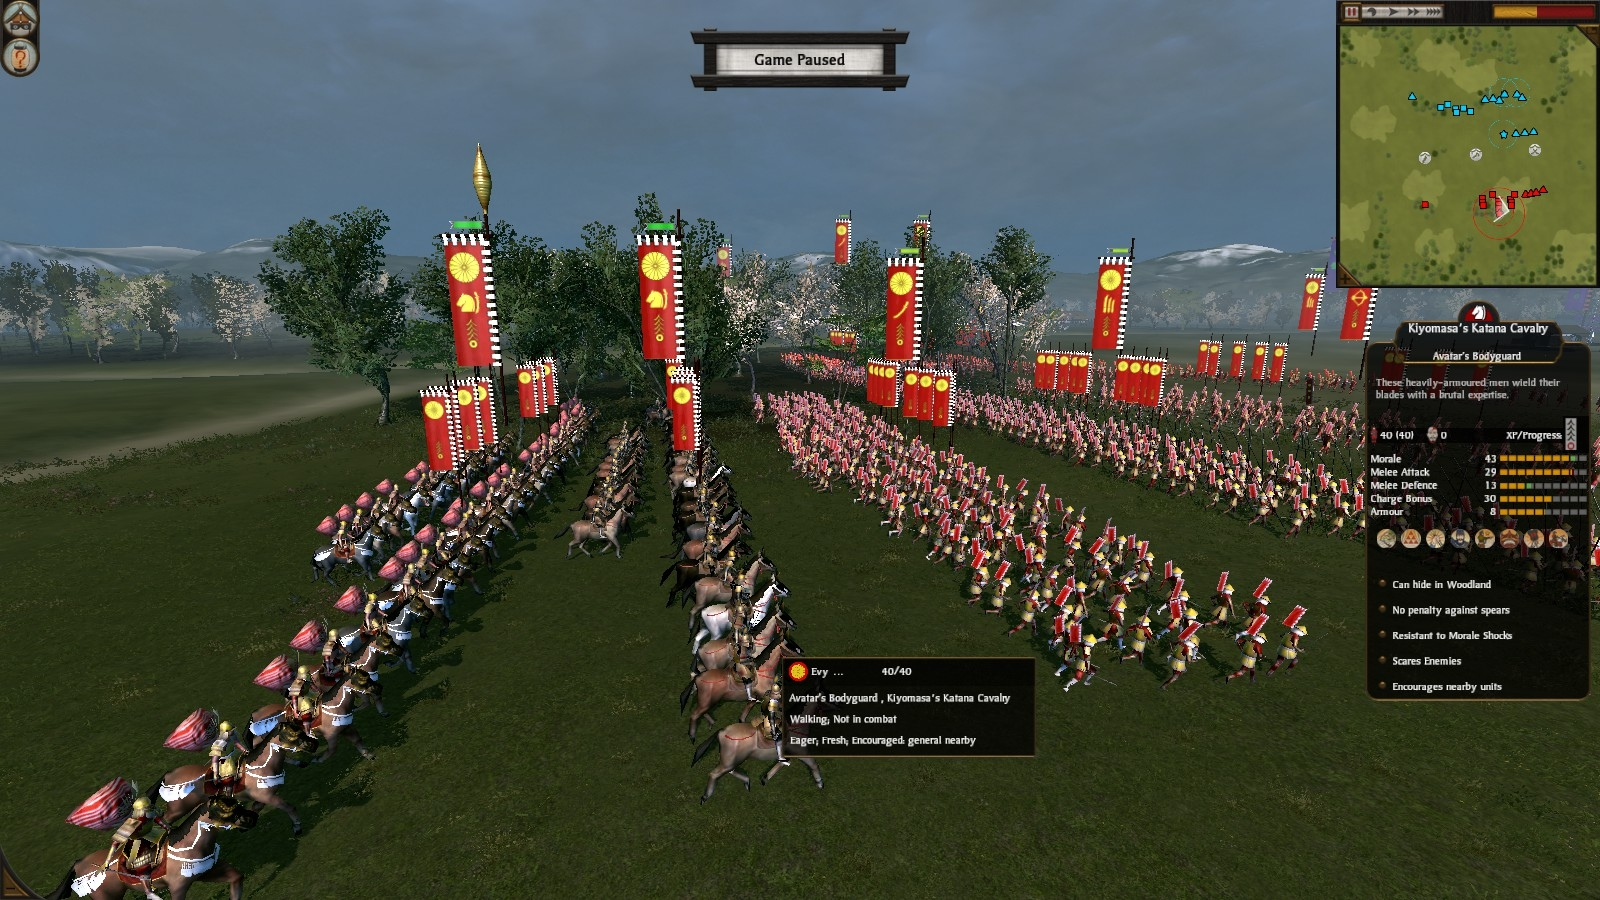 For Total War Battles: KINGDOM on the PC, GameFAQs has game information and a community message board for game discussion. GameFAQs. Answers Boards Community Contribute Games What's New. Total War Battles: KINGDOM - Cheats.